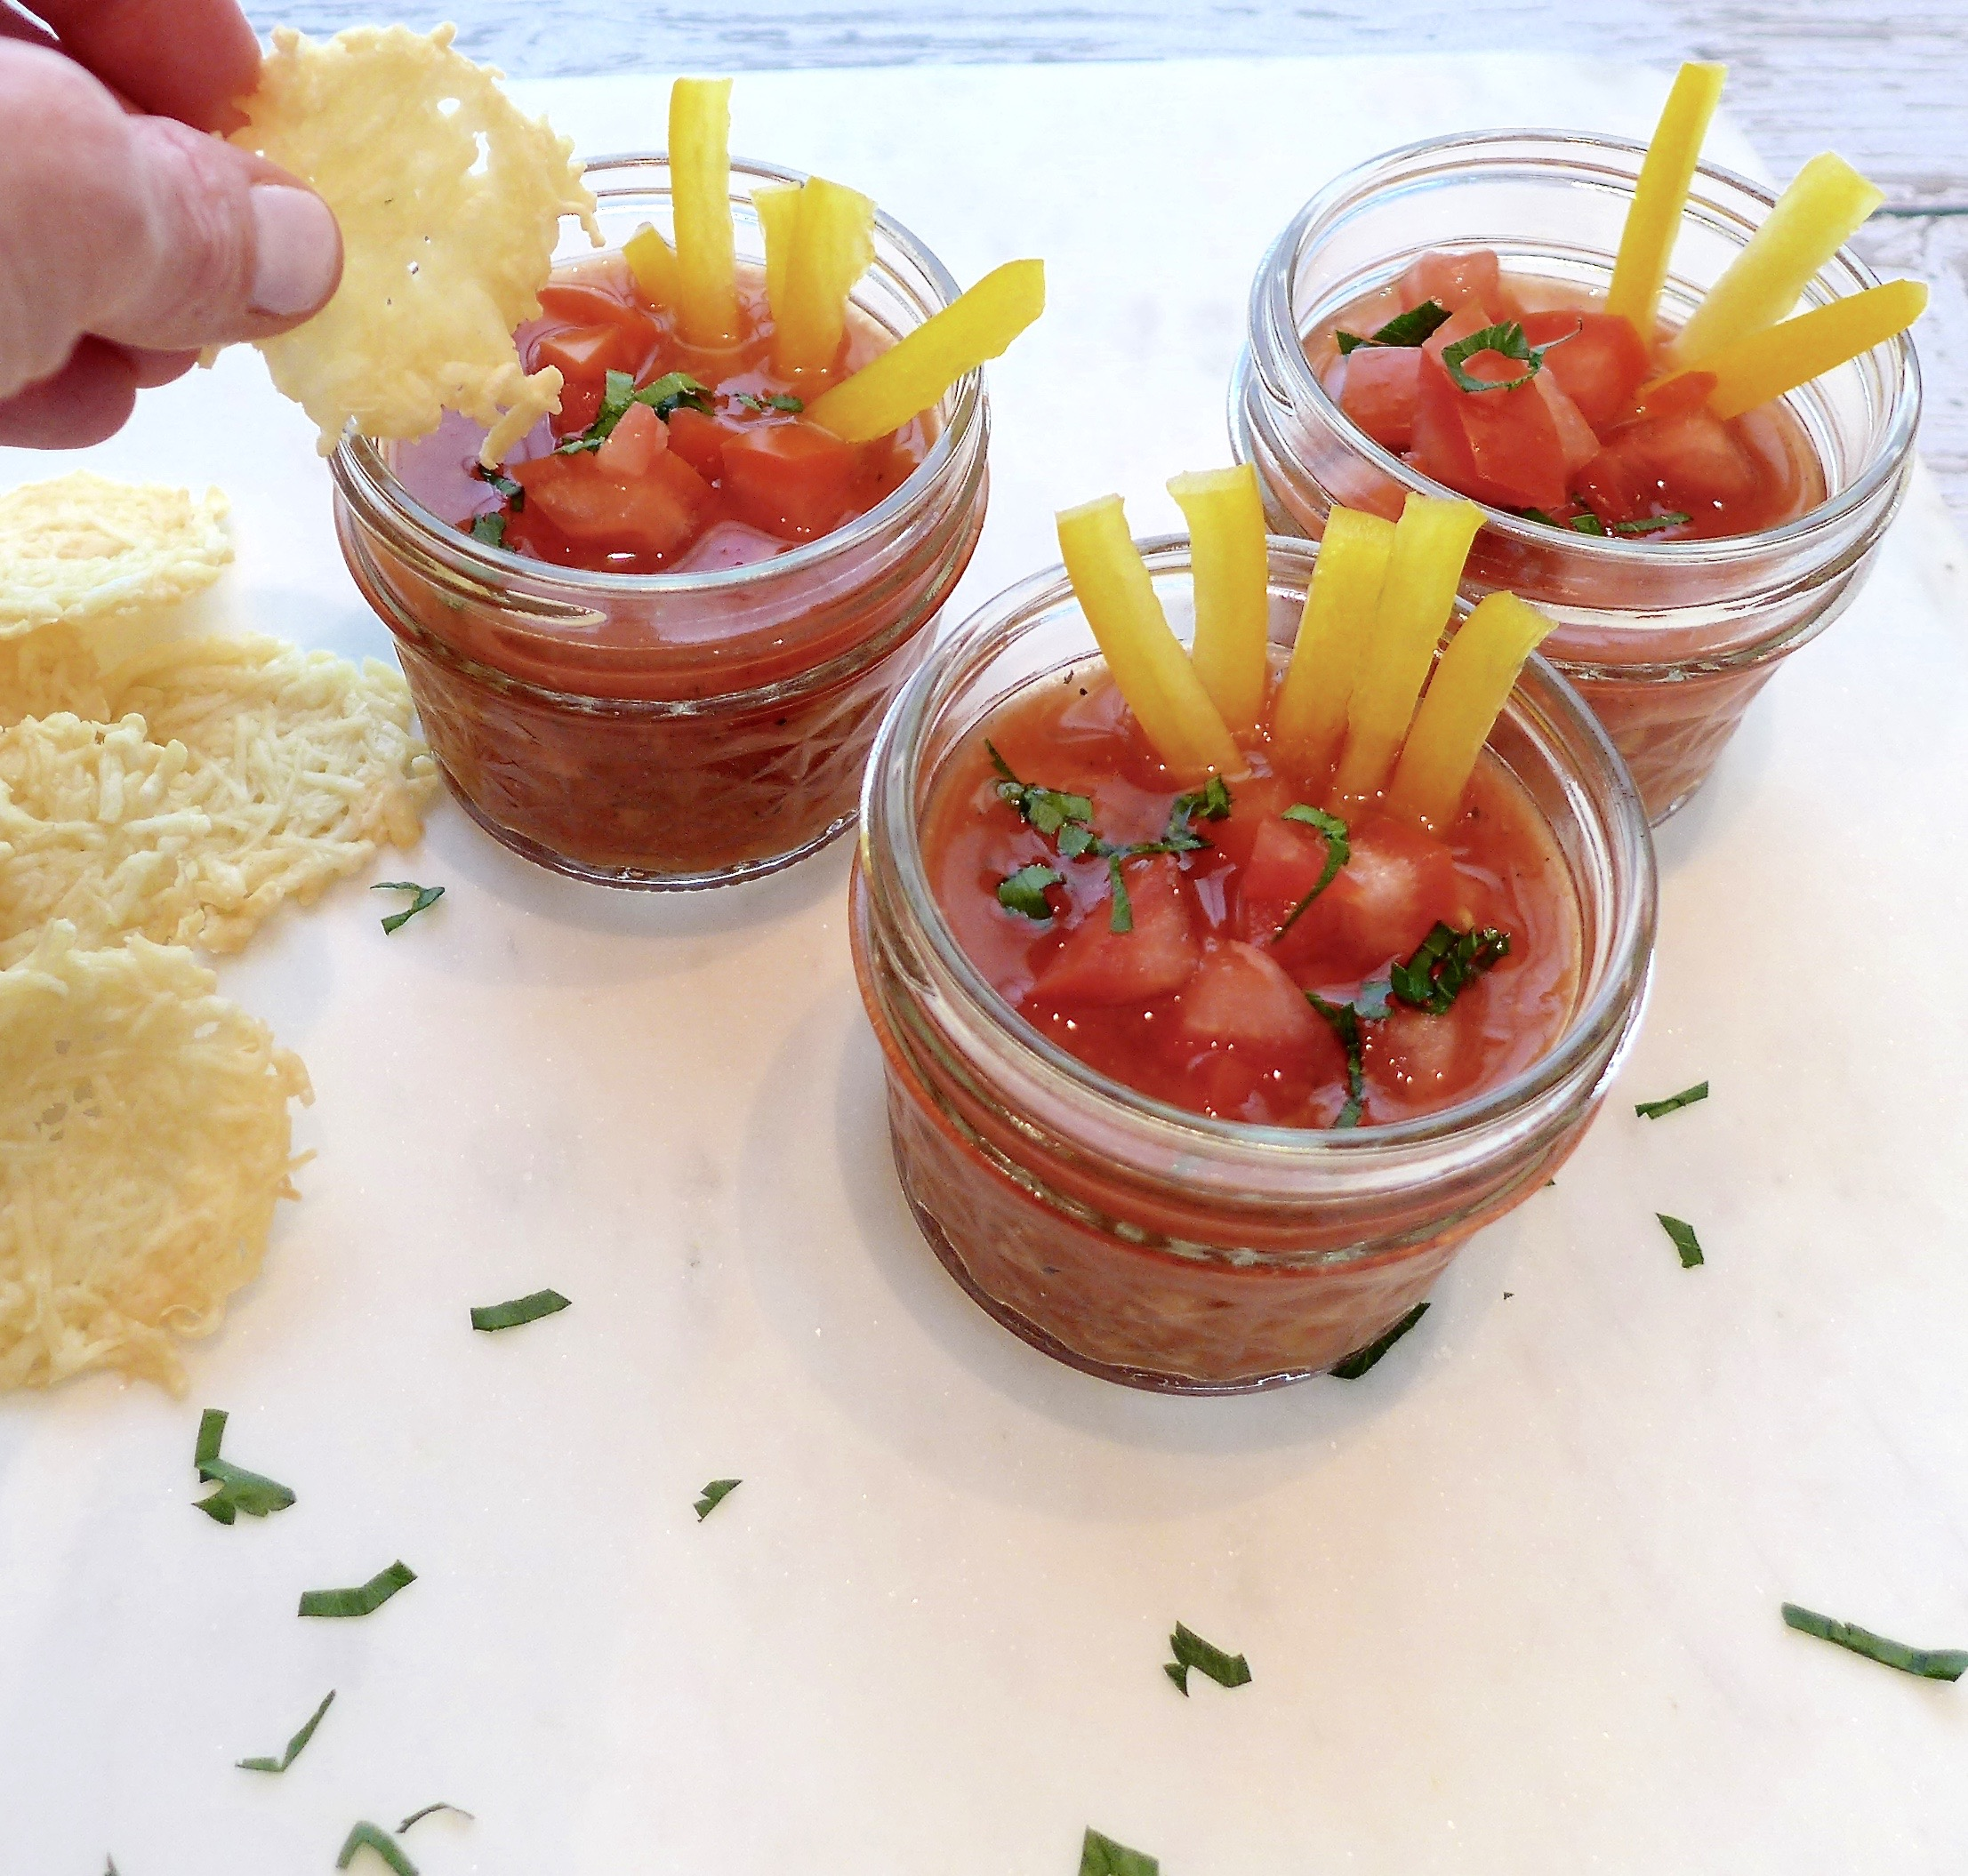 Serve gazpacho in little jelly jars or small glasses for a great starter, side or party sipper. Use Parmesan crisps for dippers or dig in with a spoon!